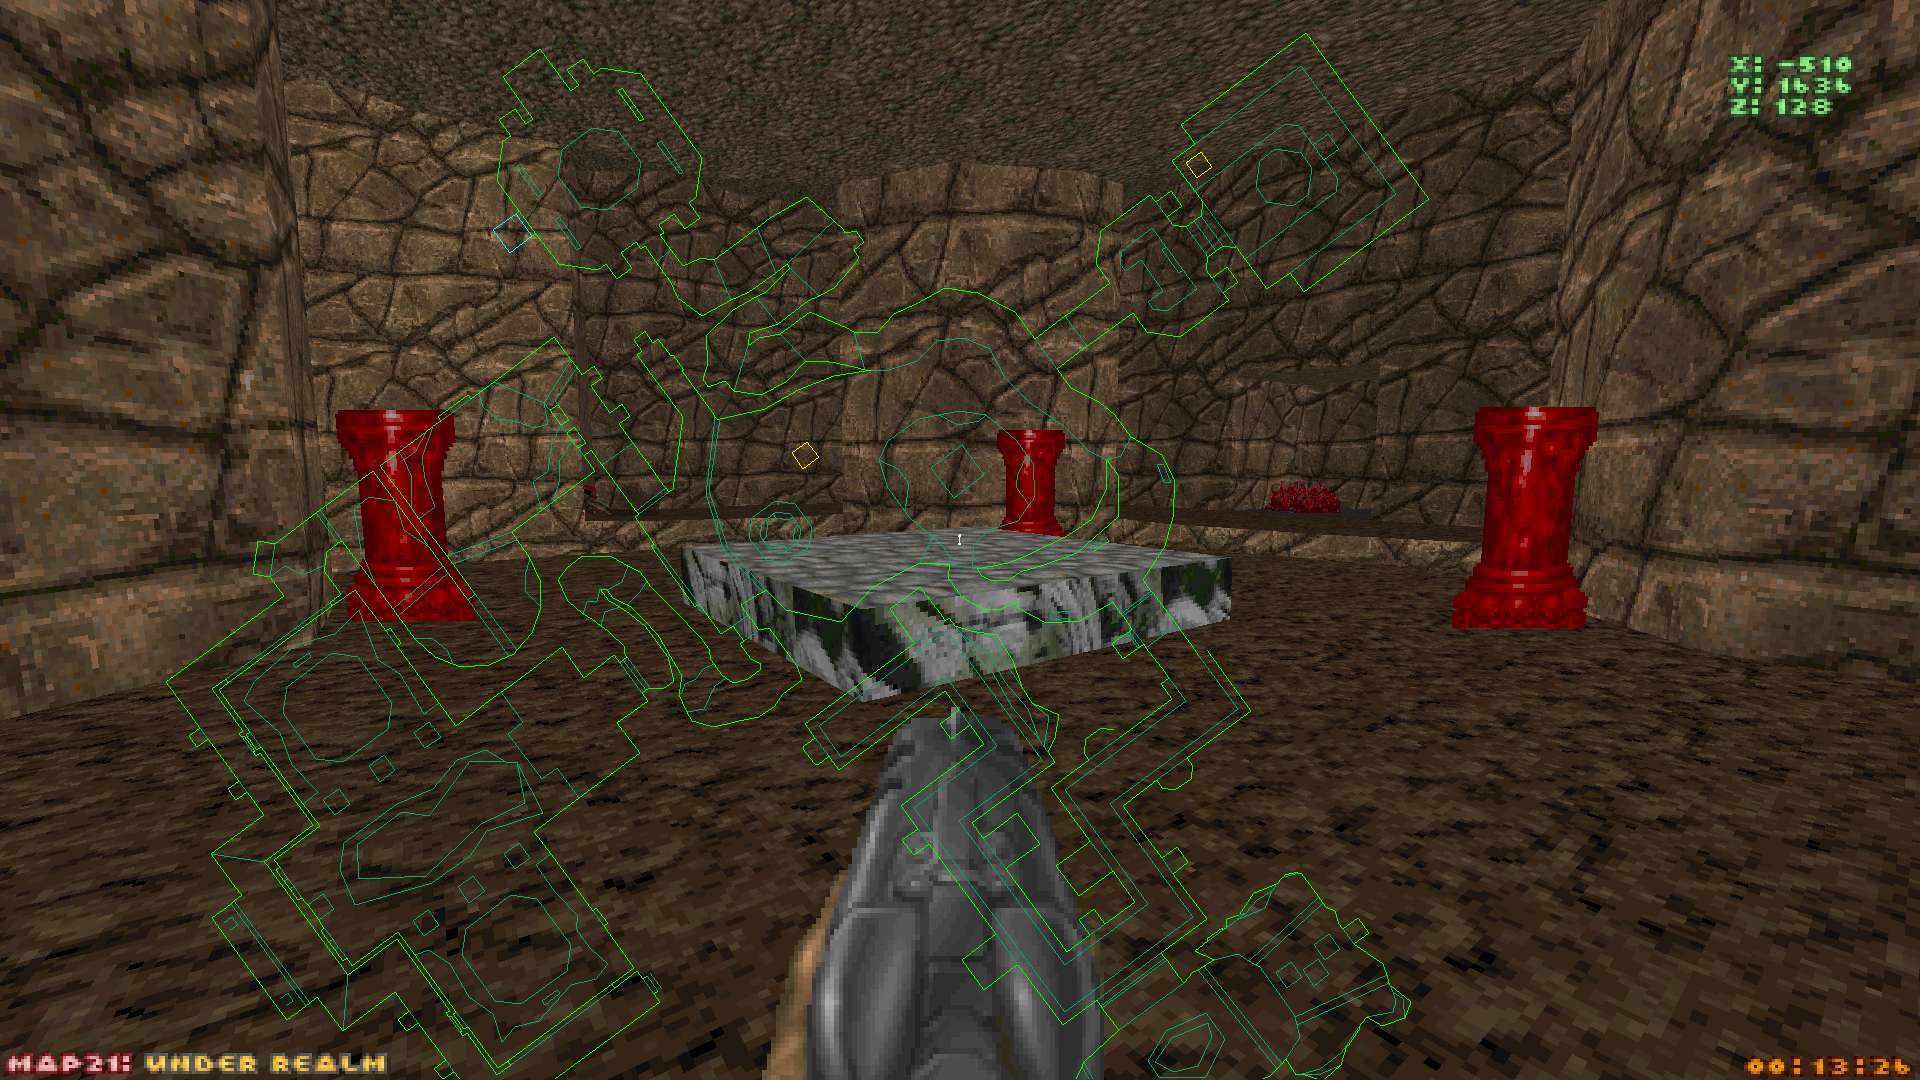 Screenshot_Doom_20200221_104747.png.51a5b12a4c9a8961166bb69c17762da6.png